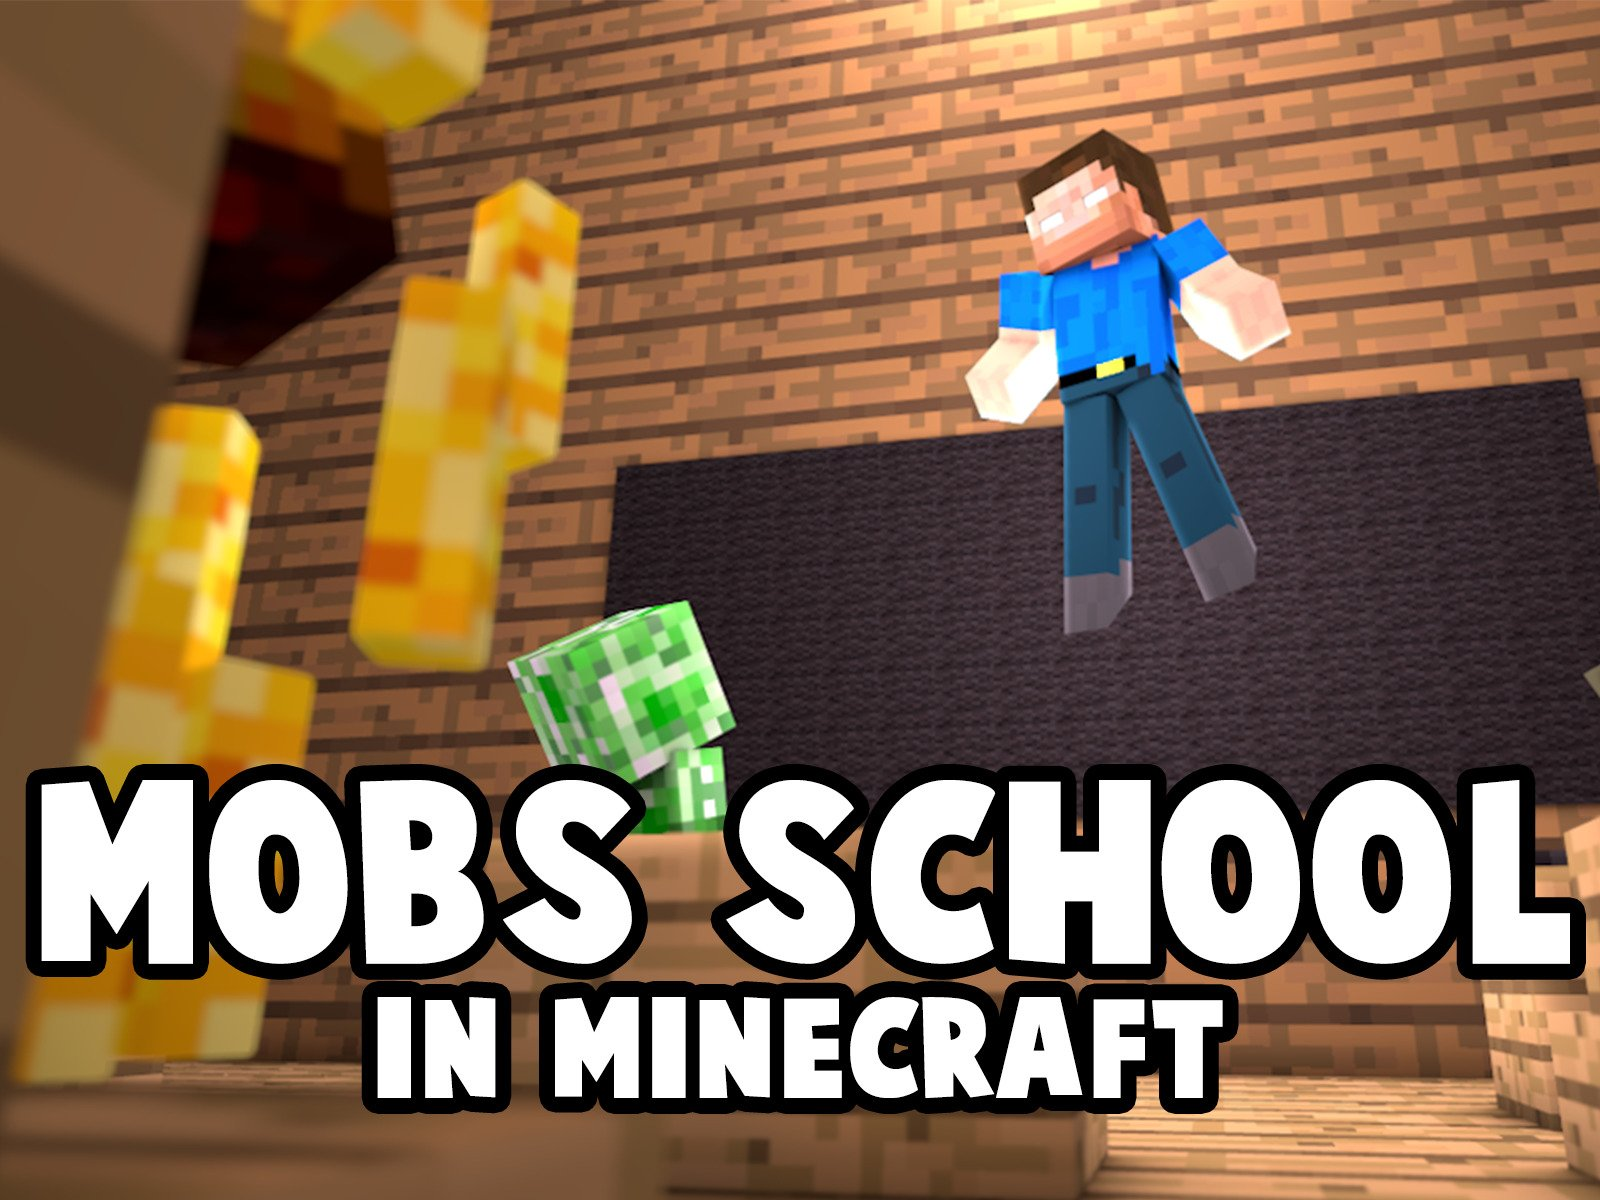 Clip: Mobs School in Minecraft - Season 1